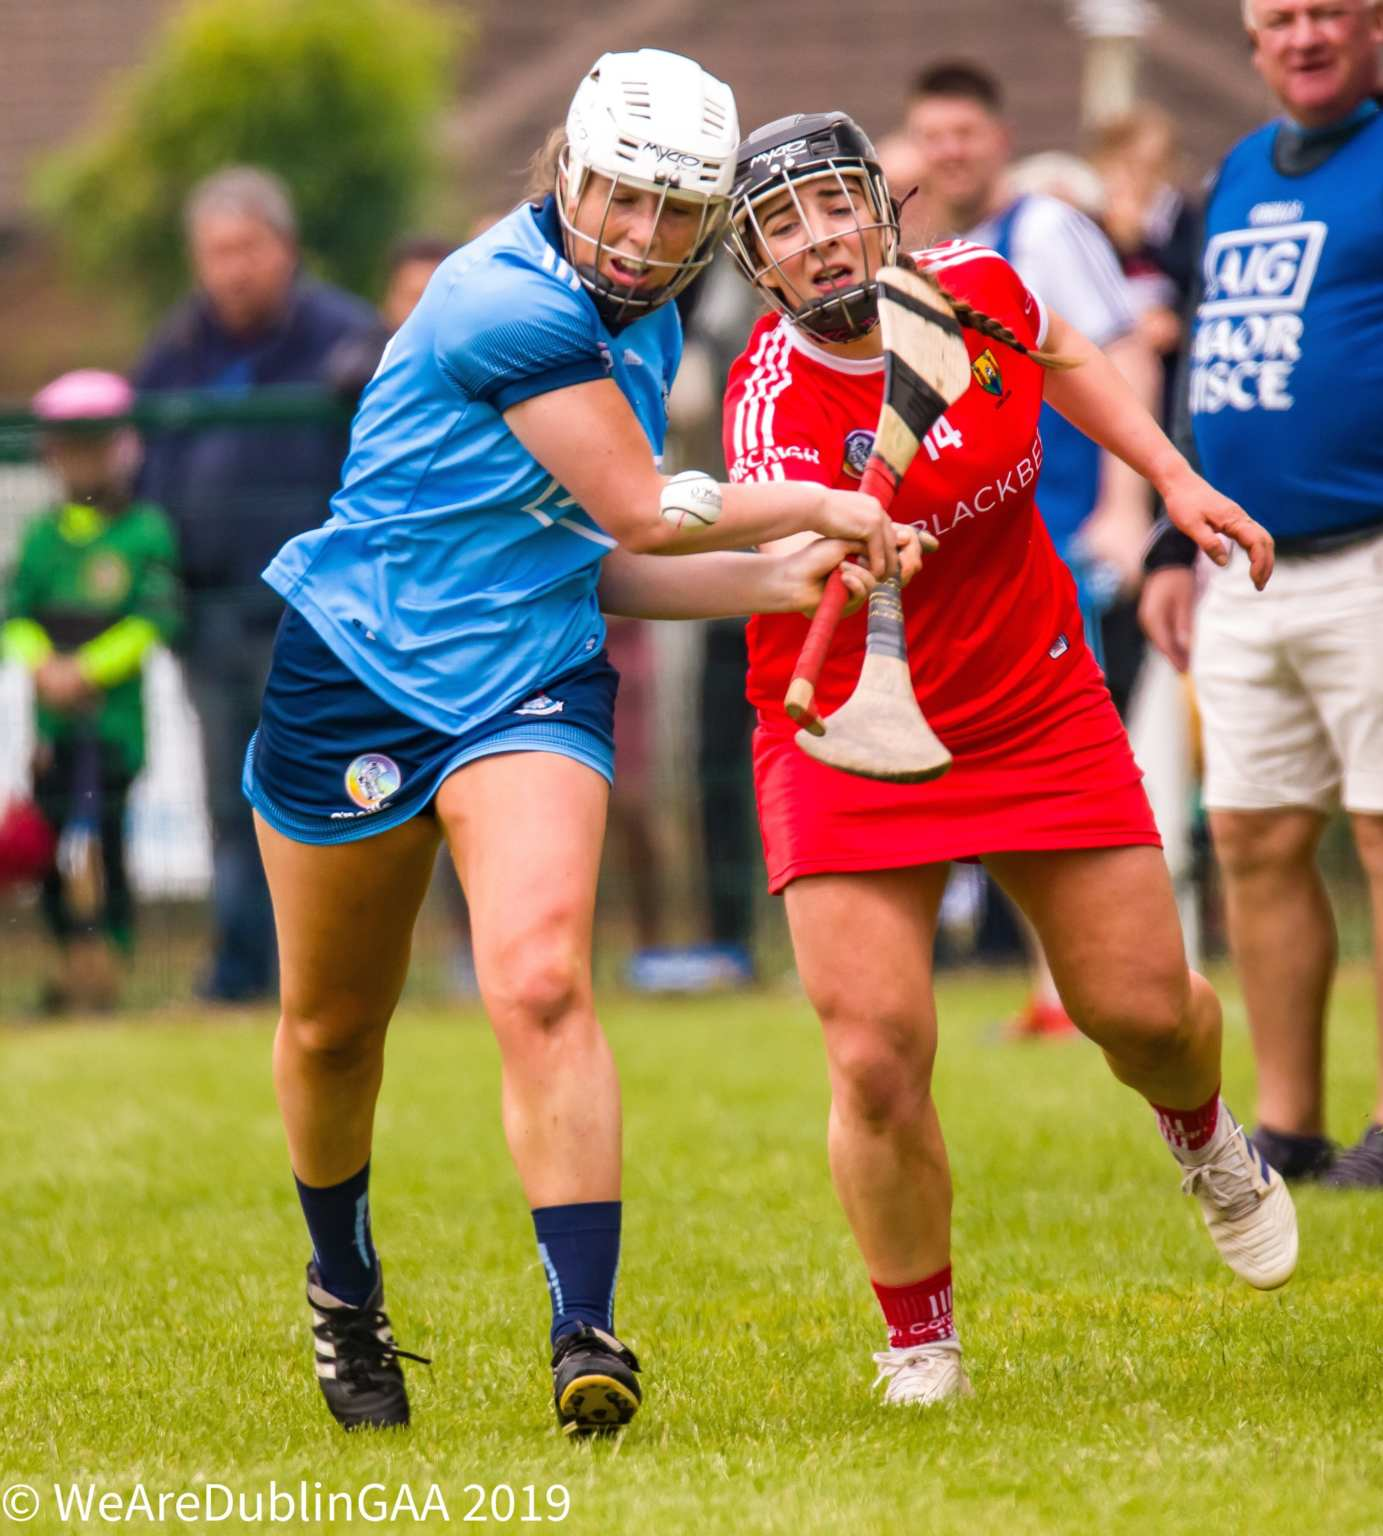 A Dublin Senior camogie attacks the Cork backline, the new management team must insure there is a proper balance between defence and attack for the upcoming season